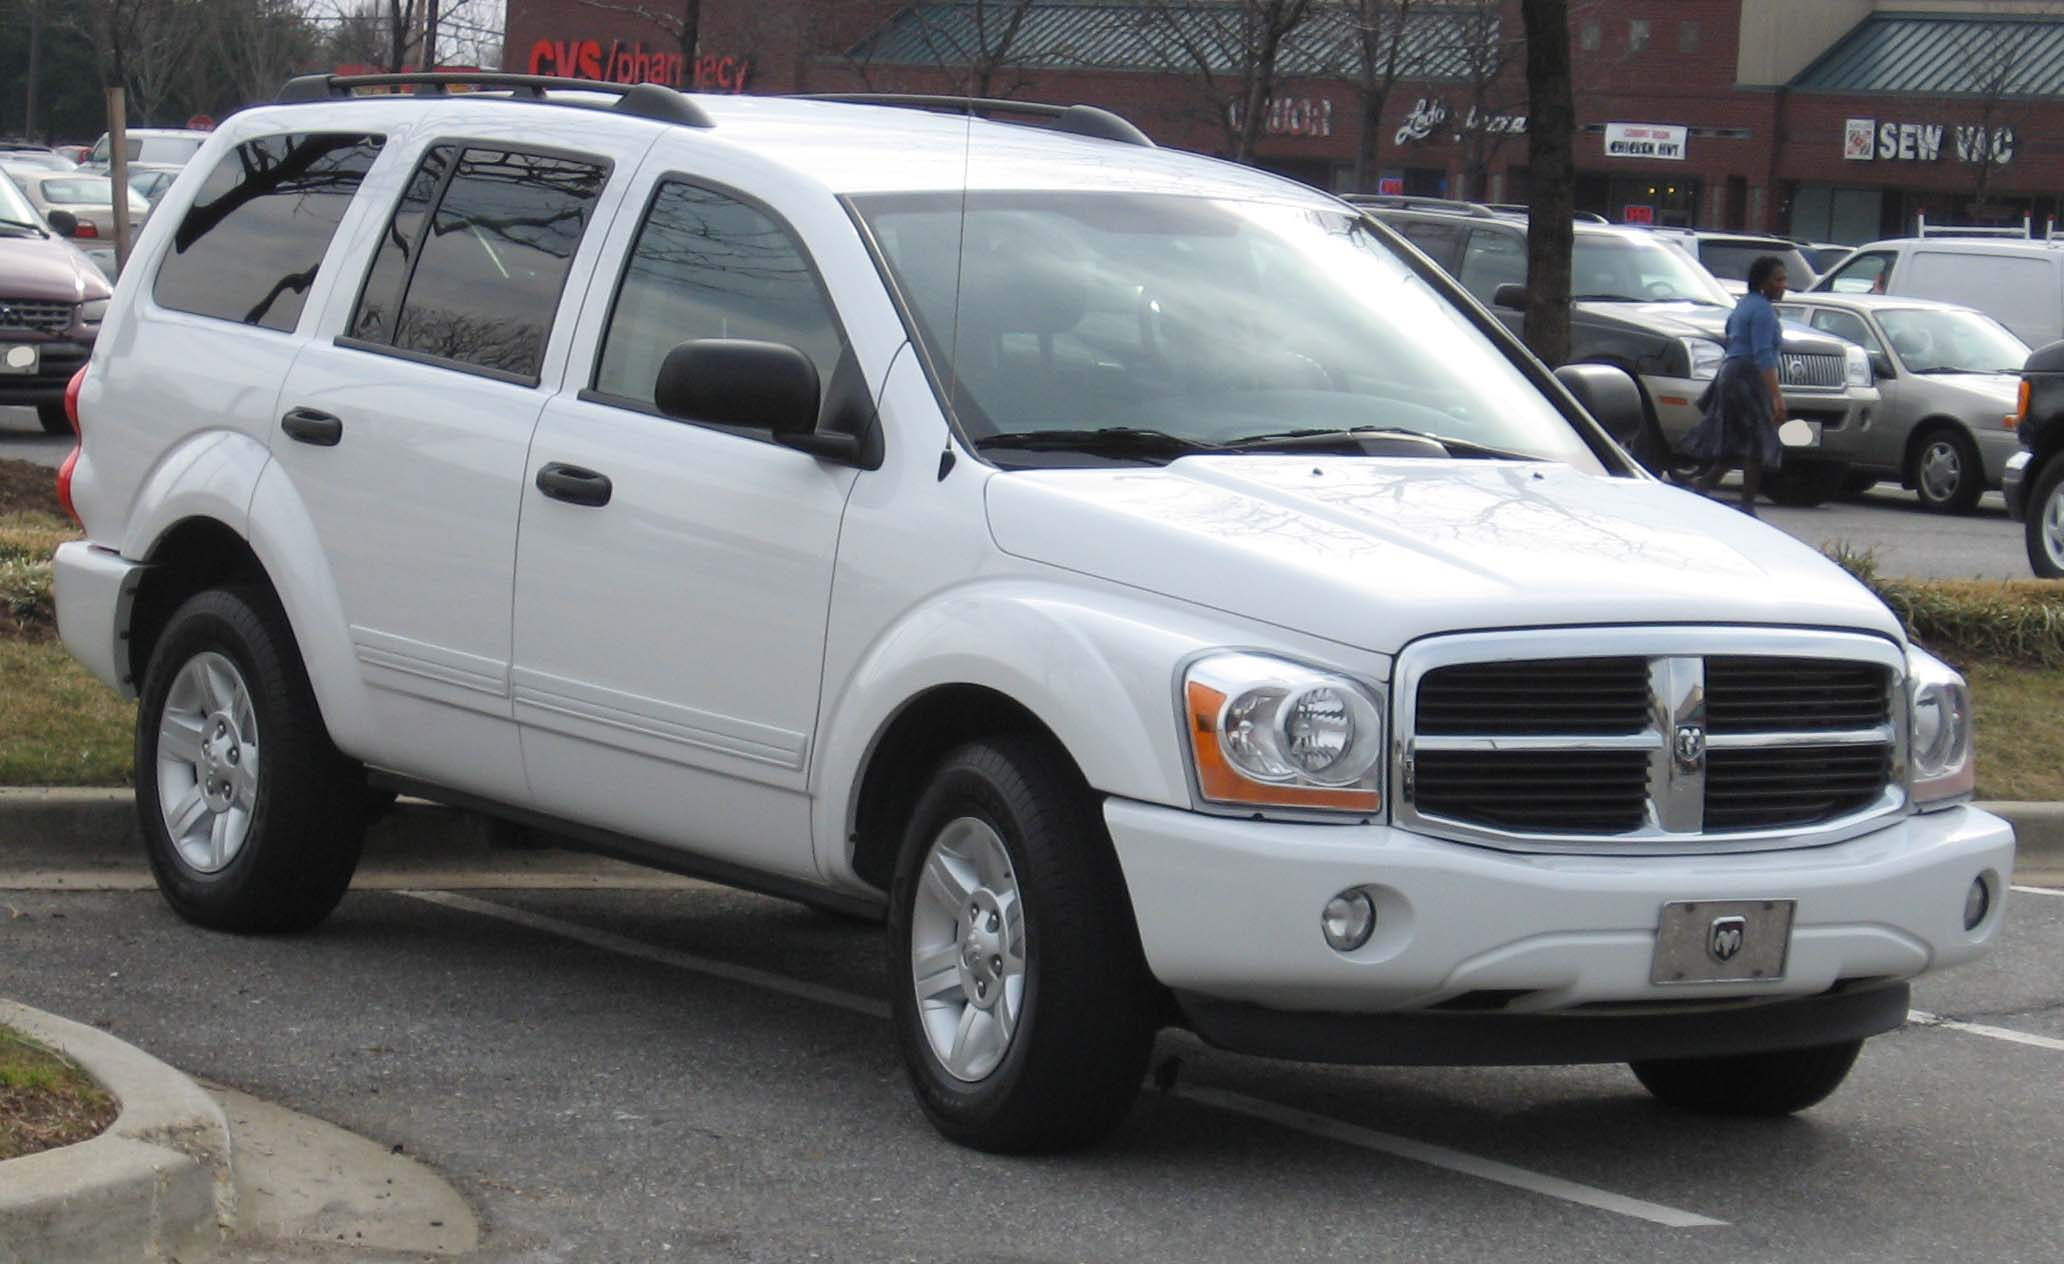 2004 Dodge Durango Photos, Informations, Articles - BestCarMag.com